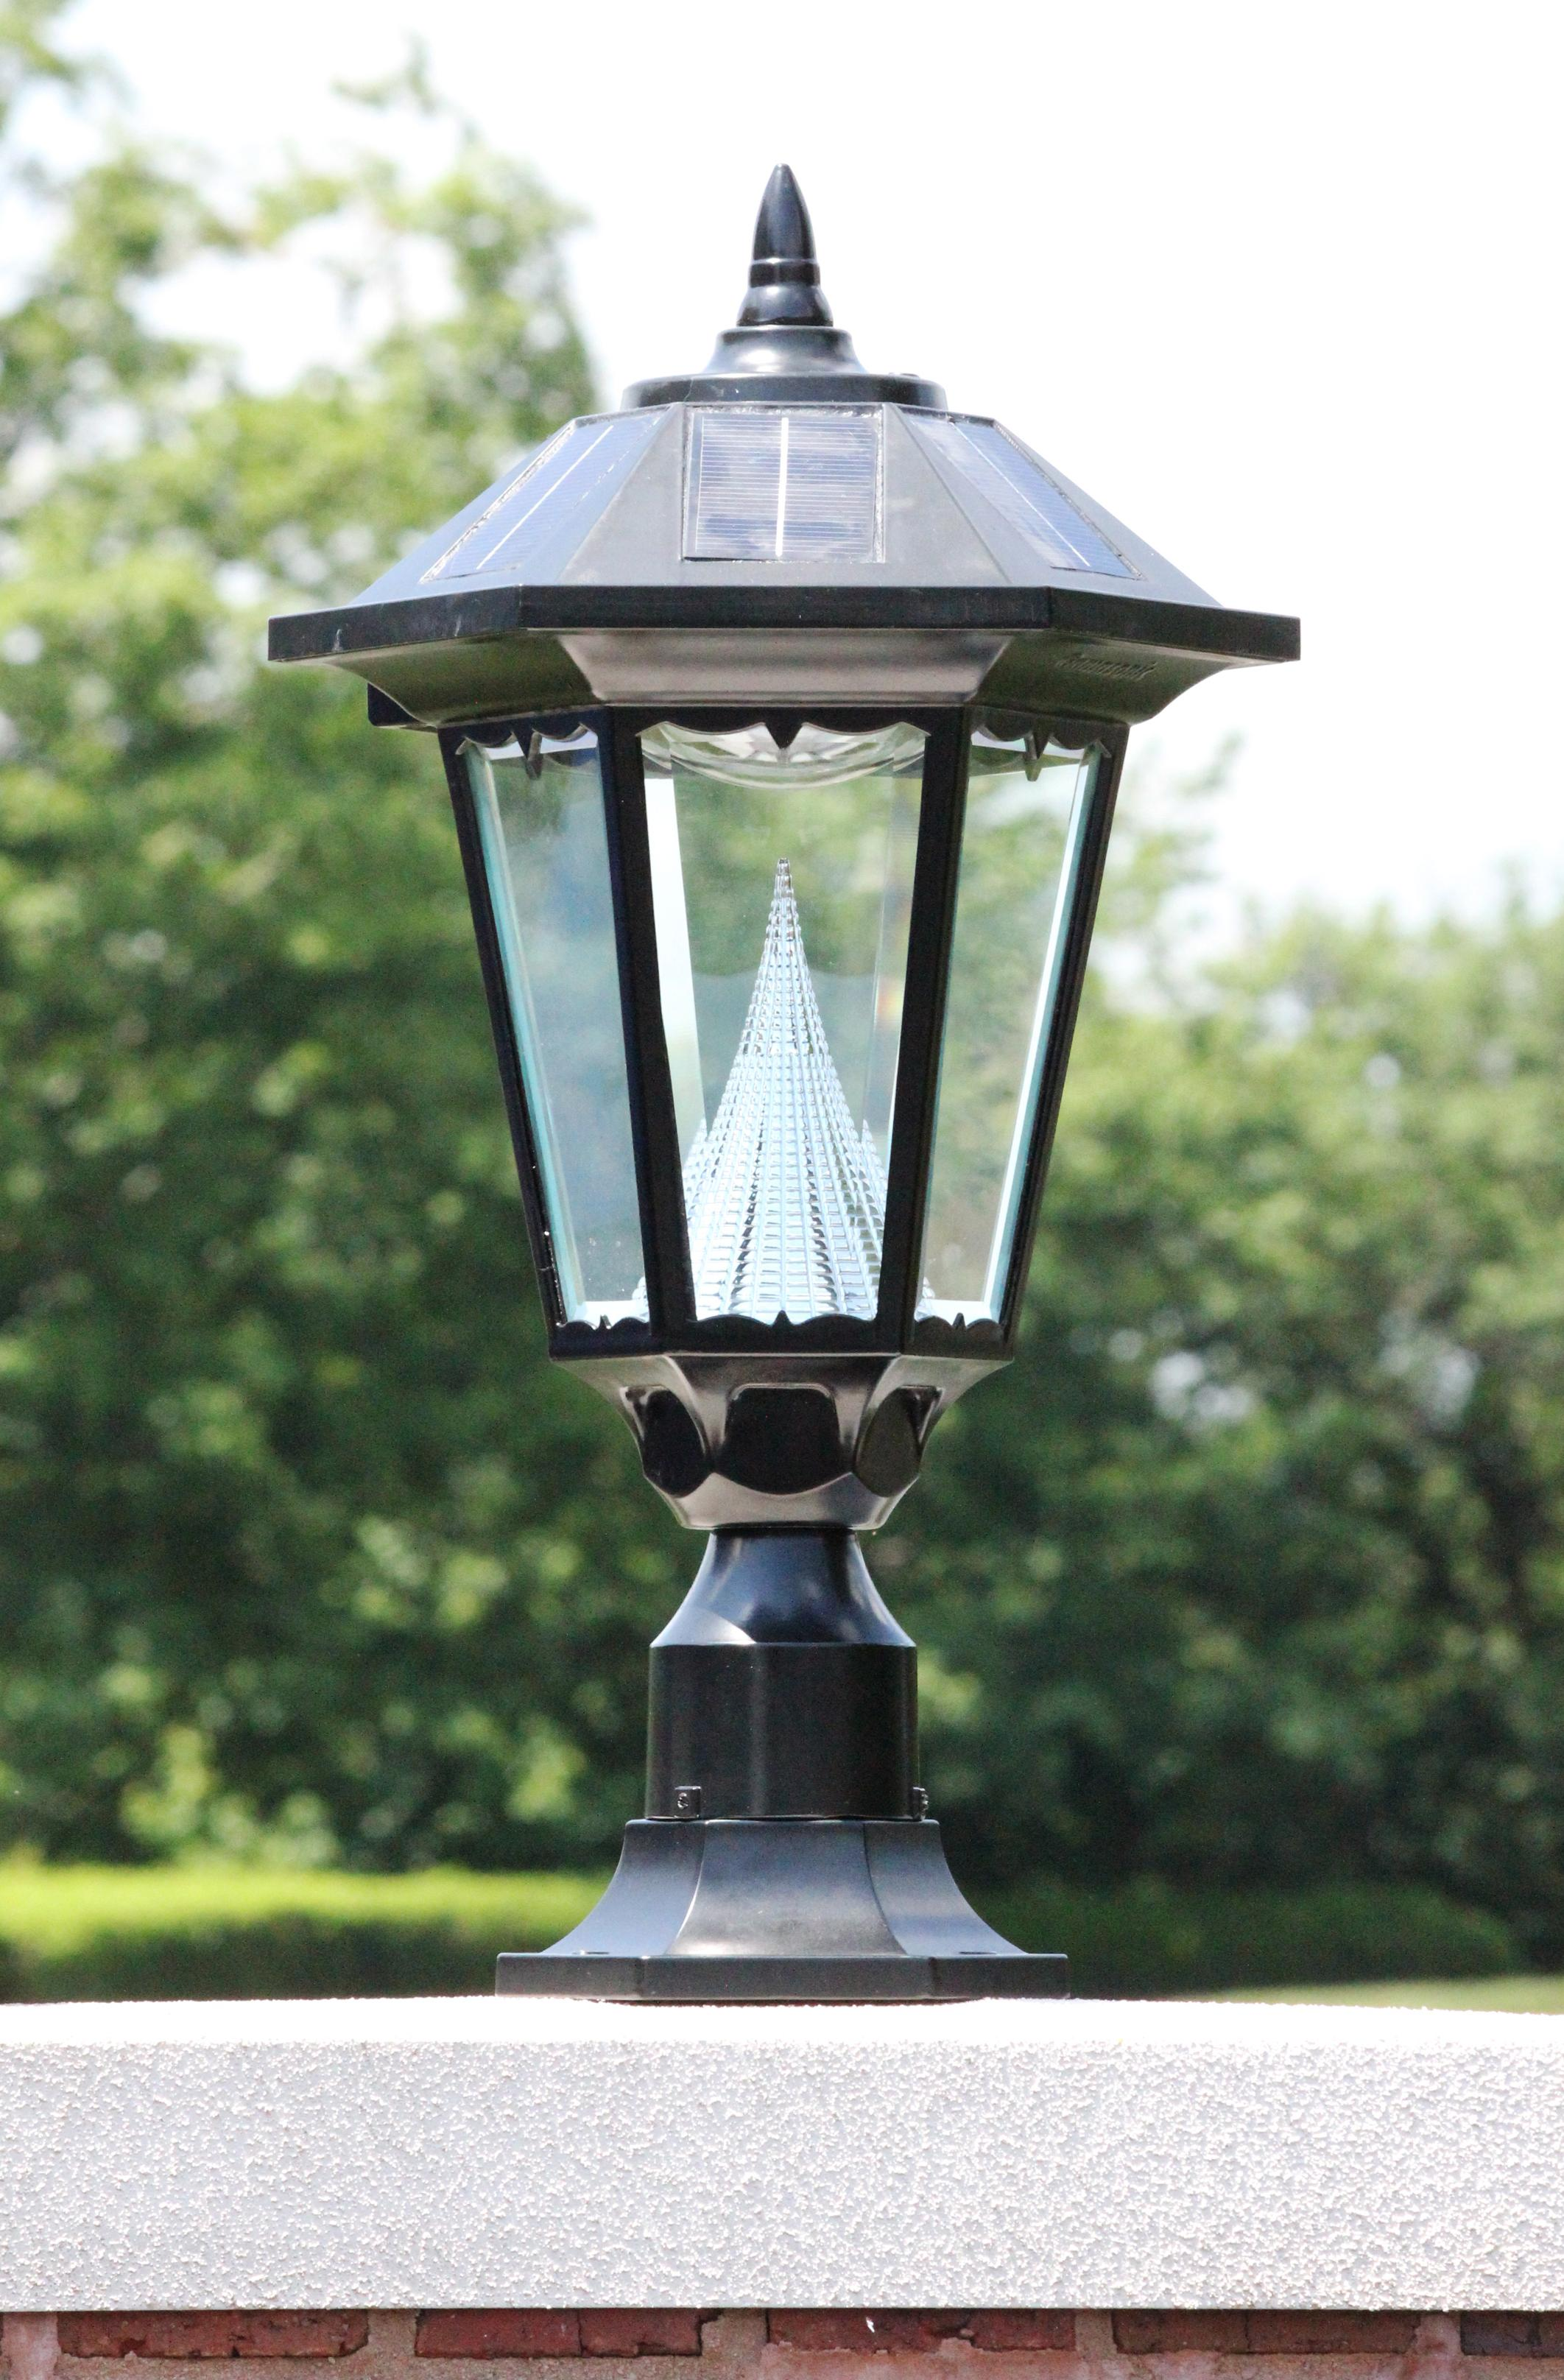 Gama sonic windsor solar outdoor led light for Landscape lighting products